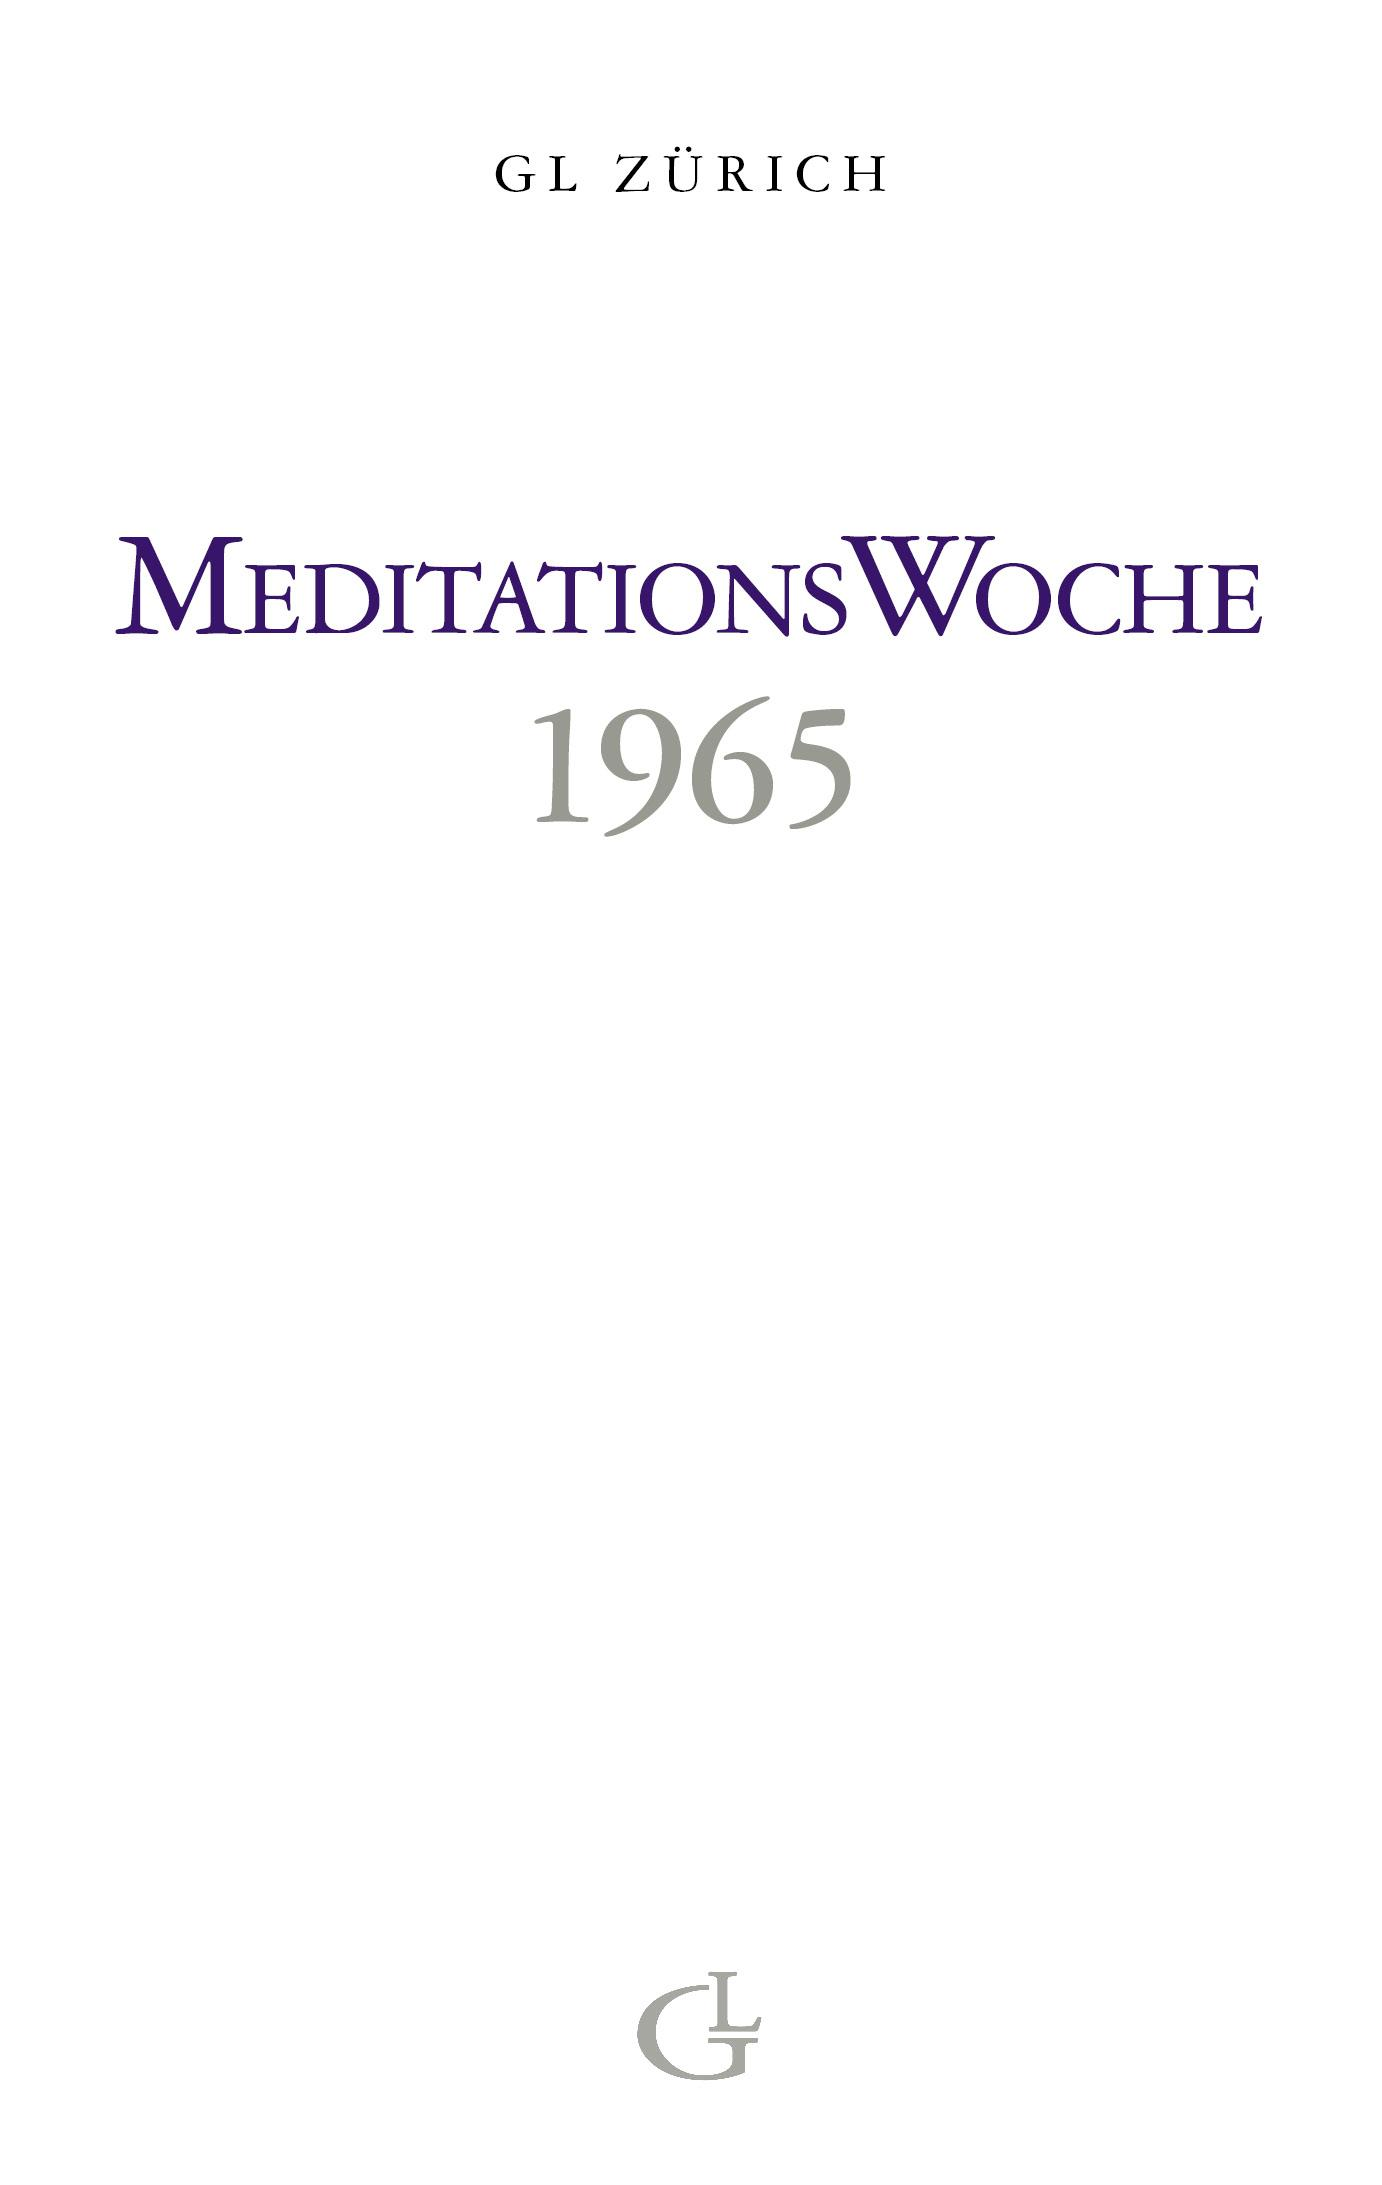 Cover des Buches Meditationswoche 1965 von Medium Beatrice Brunner